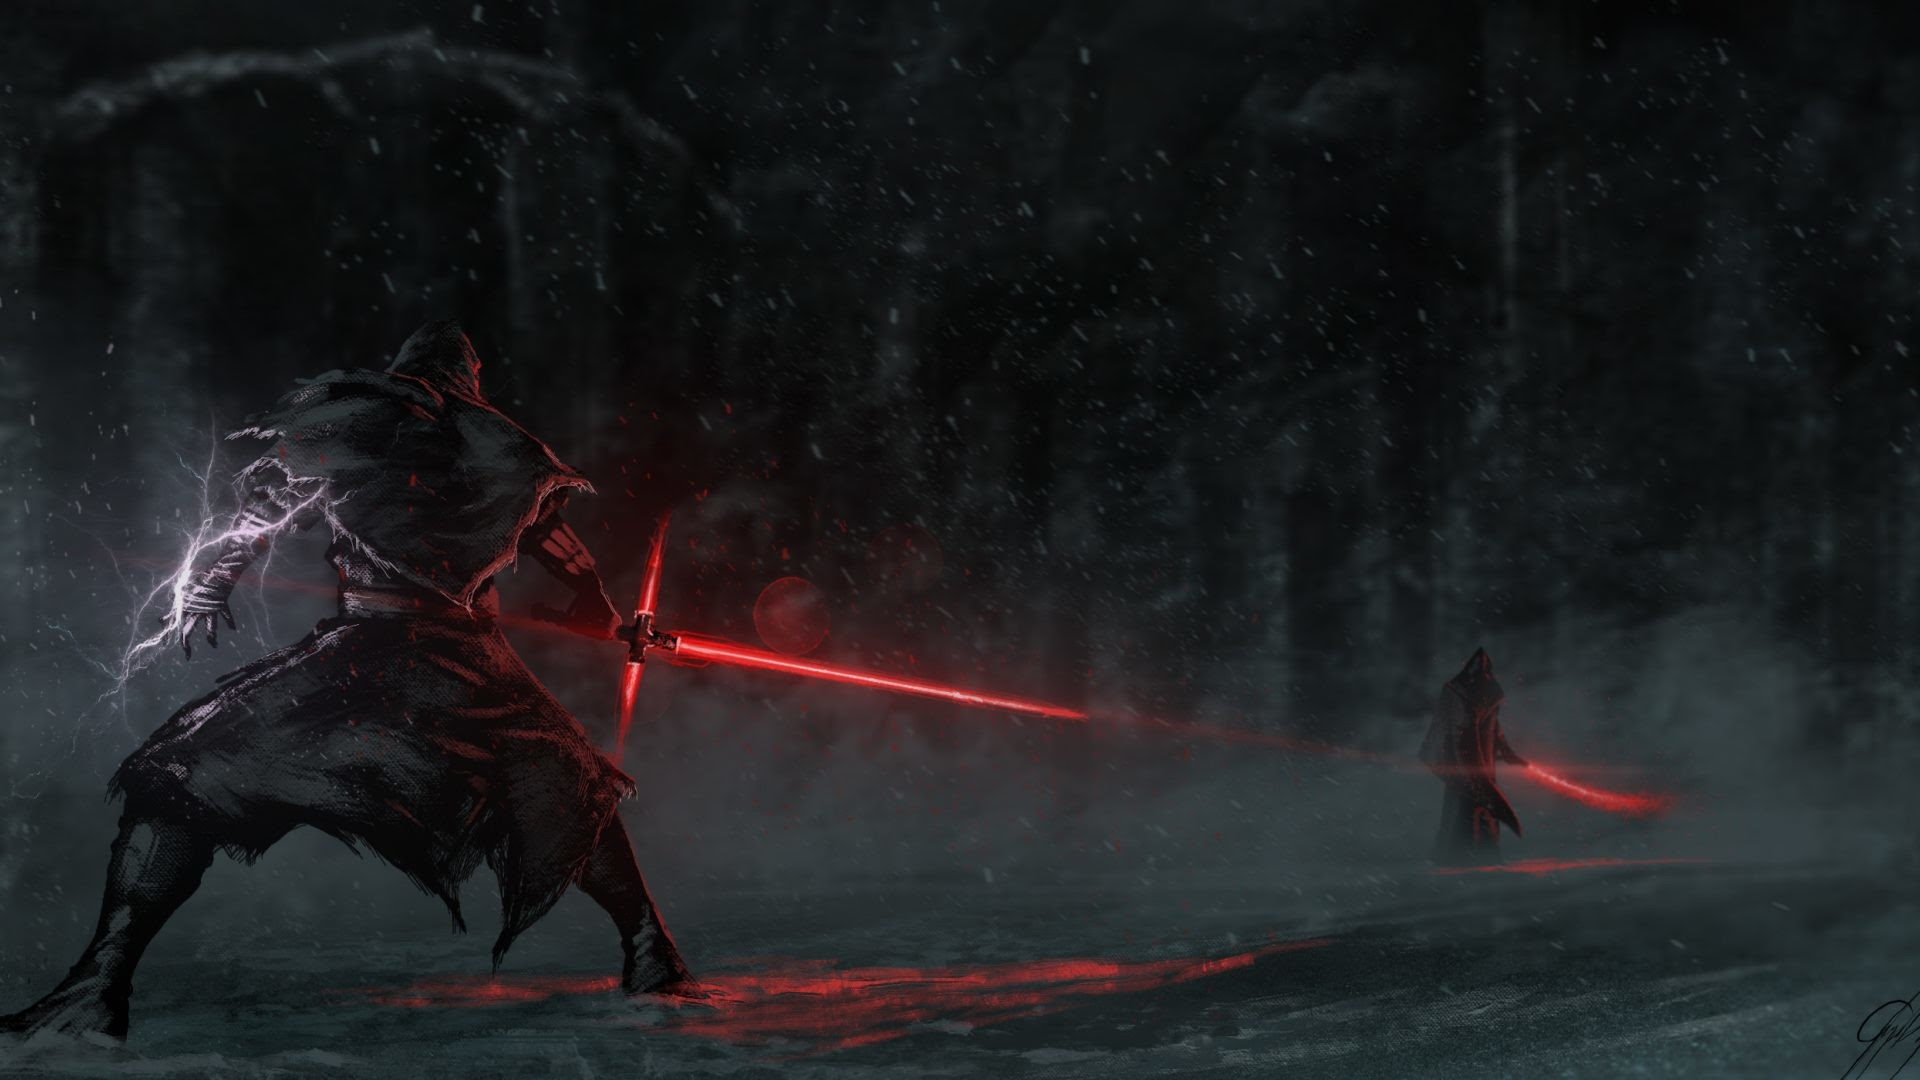 Sith Hd Wallpaper 75 Images